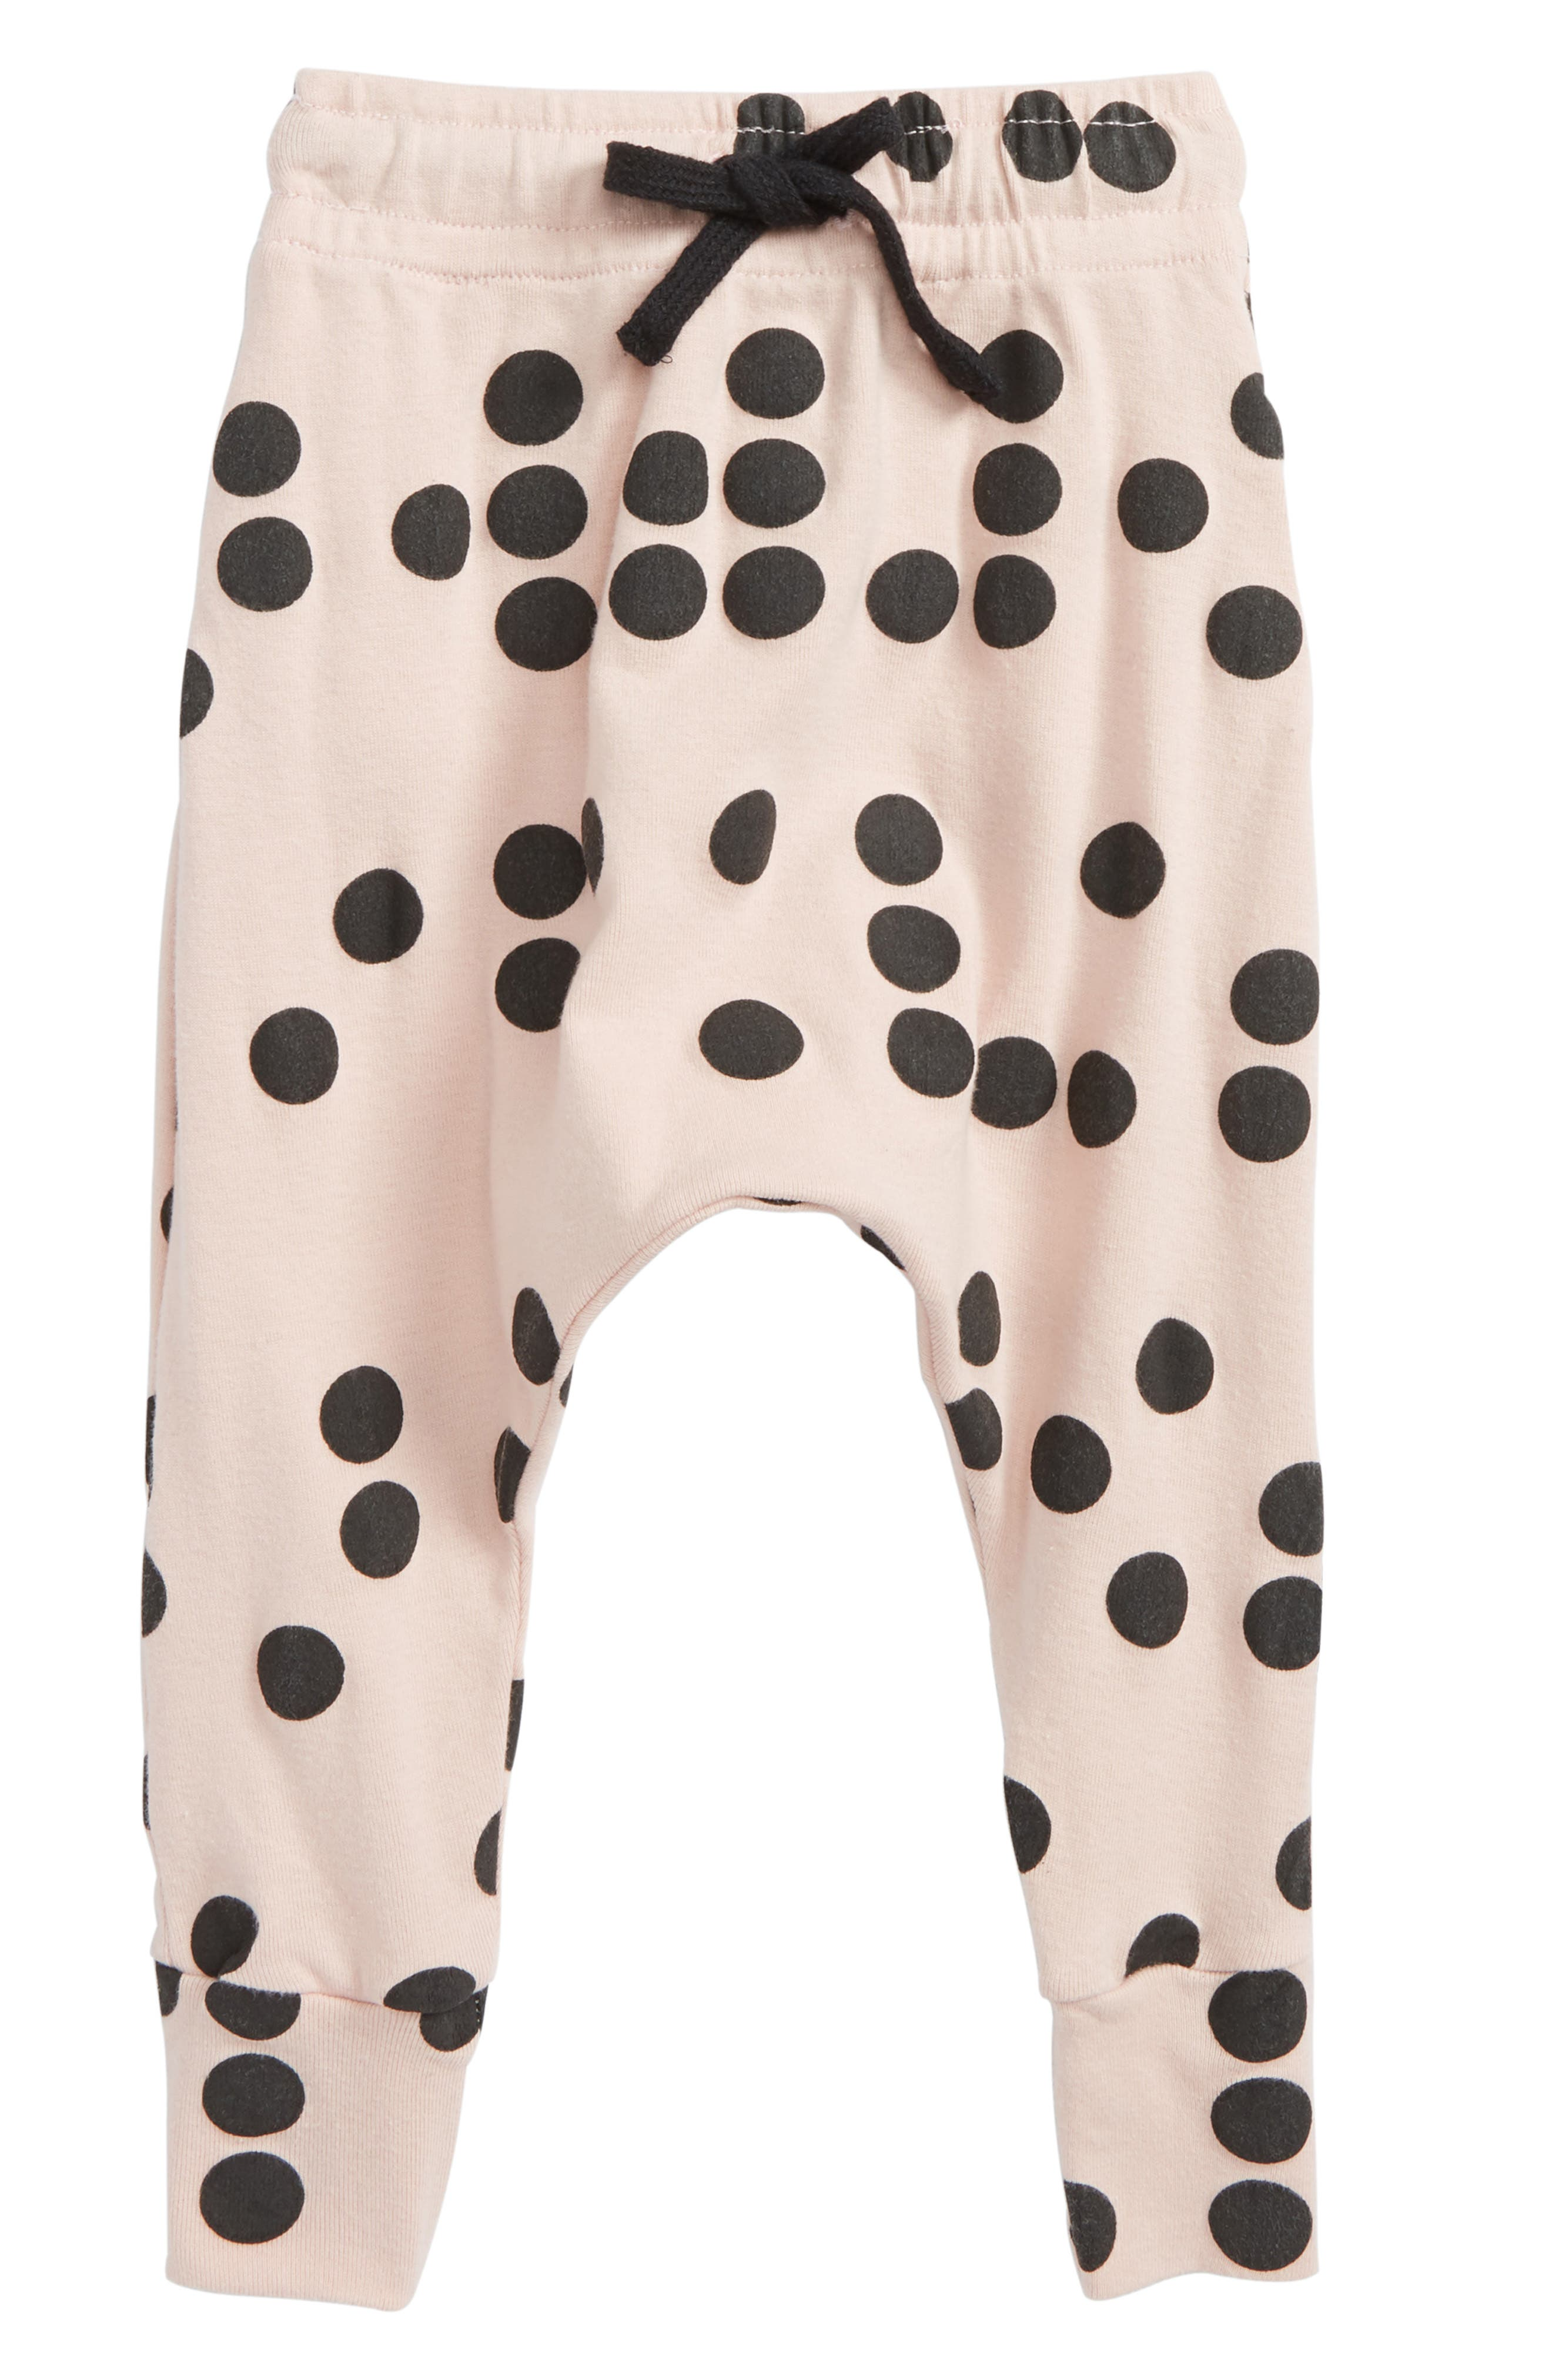 Braille Baggy Pants,                         Main,                         color, Powder Pink